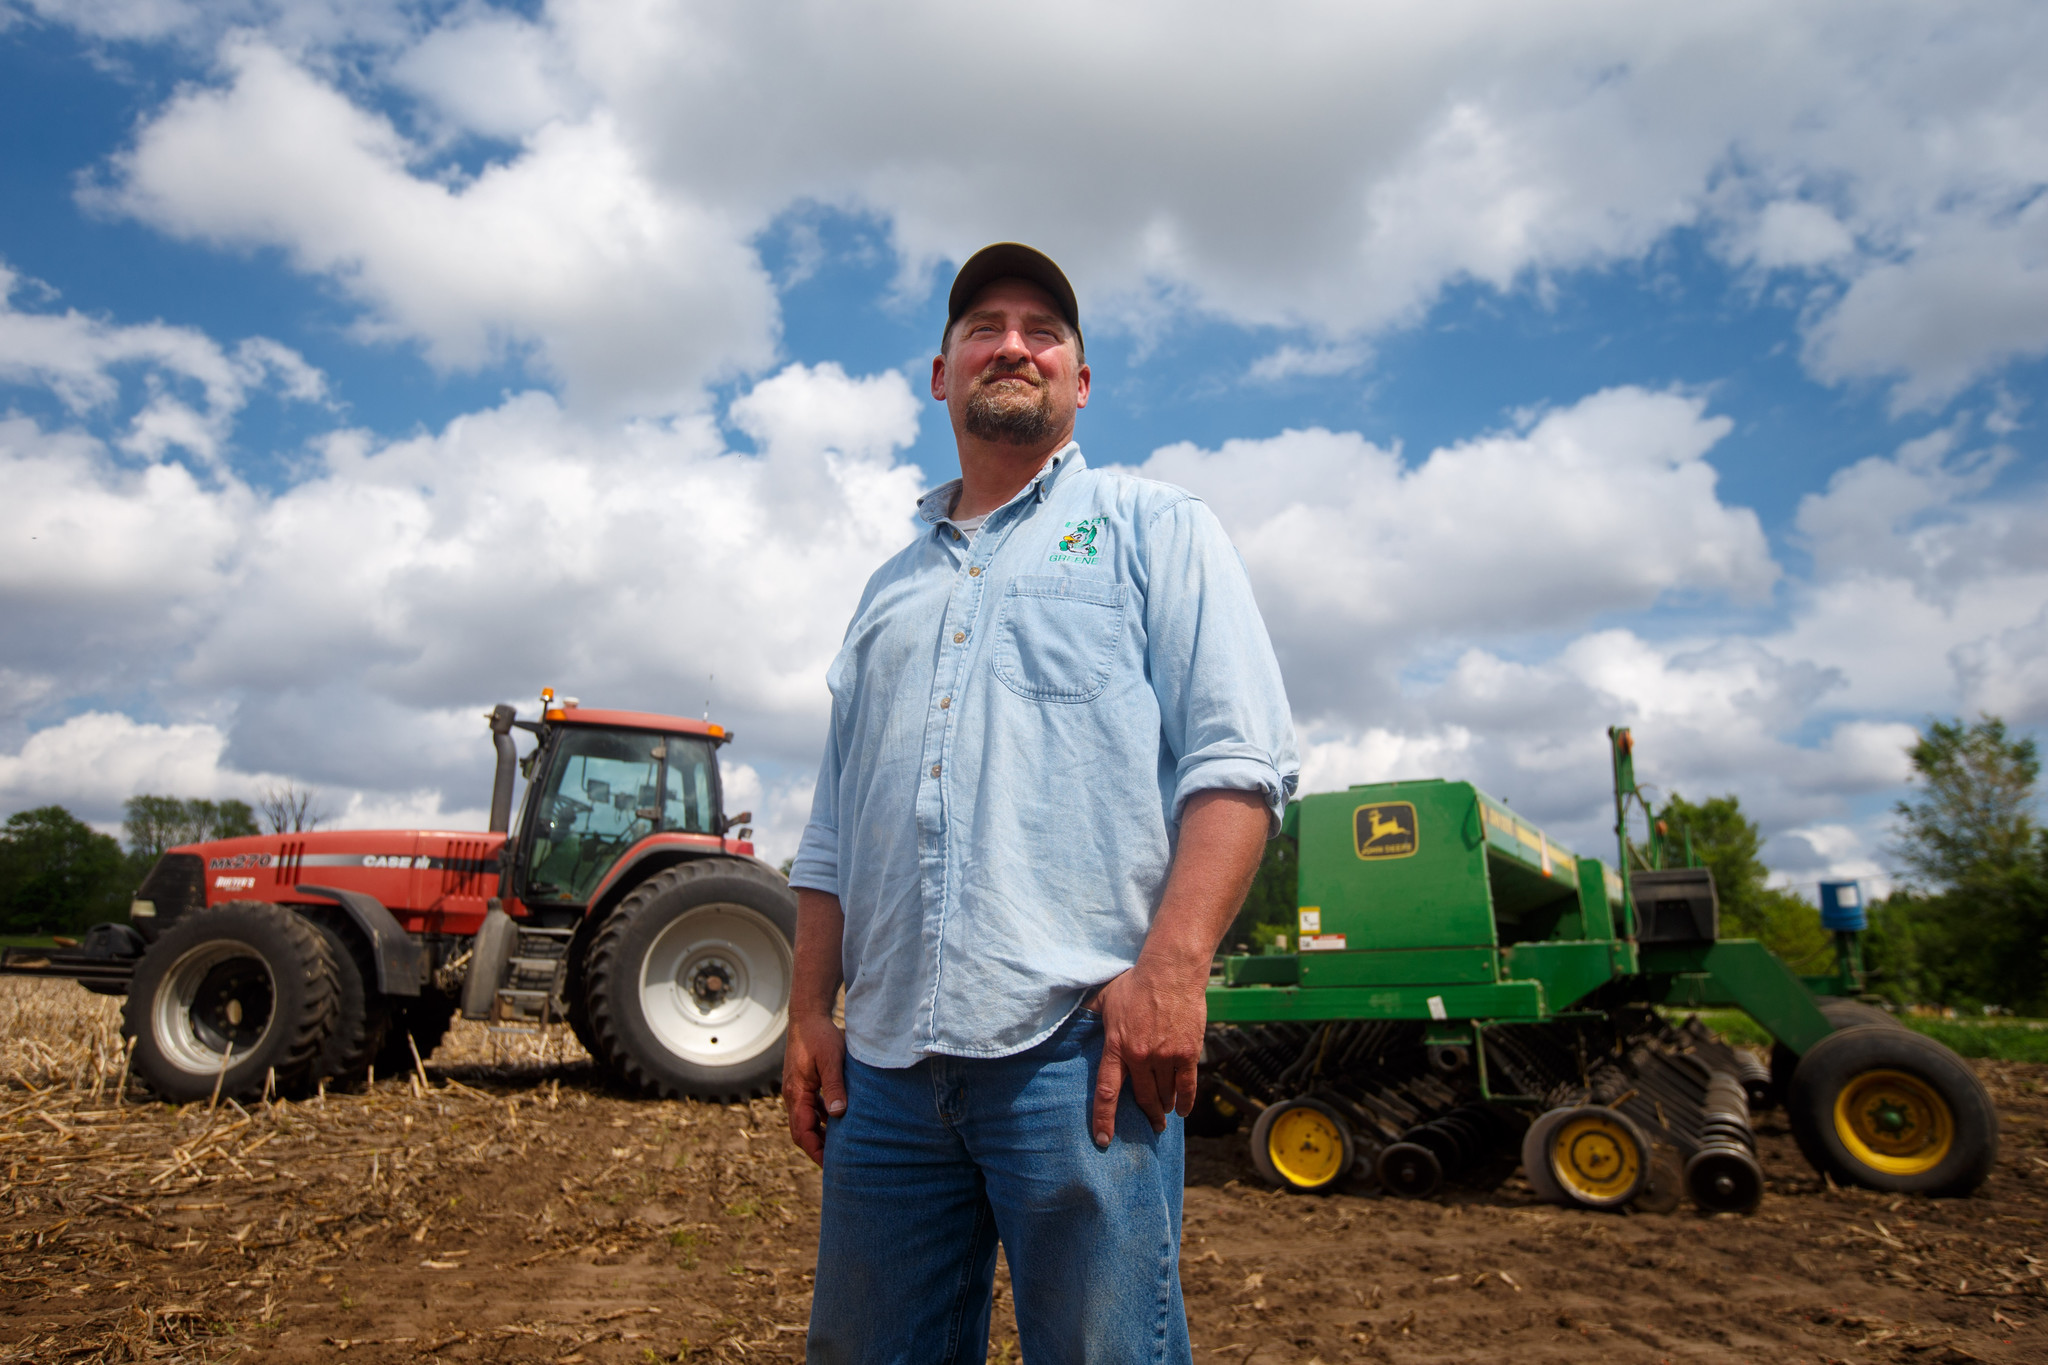 As U.S.-China trade war continues, there's little indication Trump is paying a political price with Midwest farmers